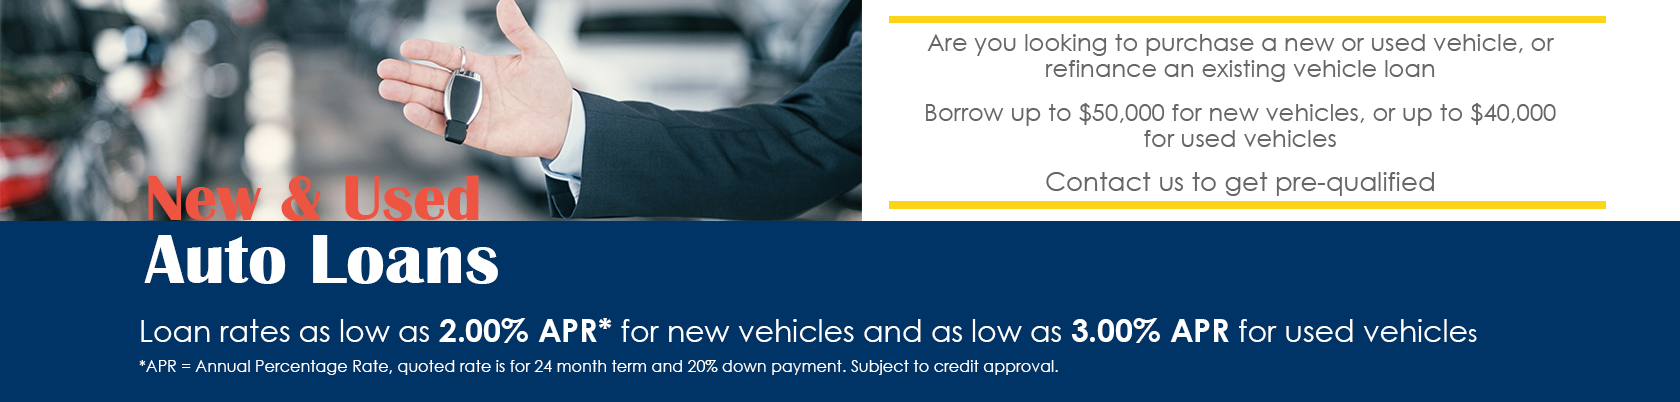 New and Used Auto Loans